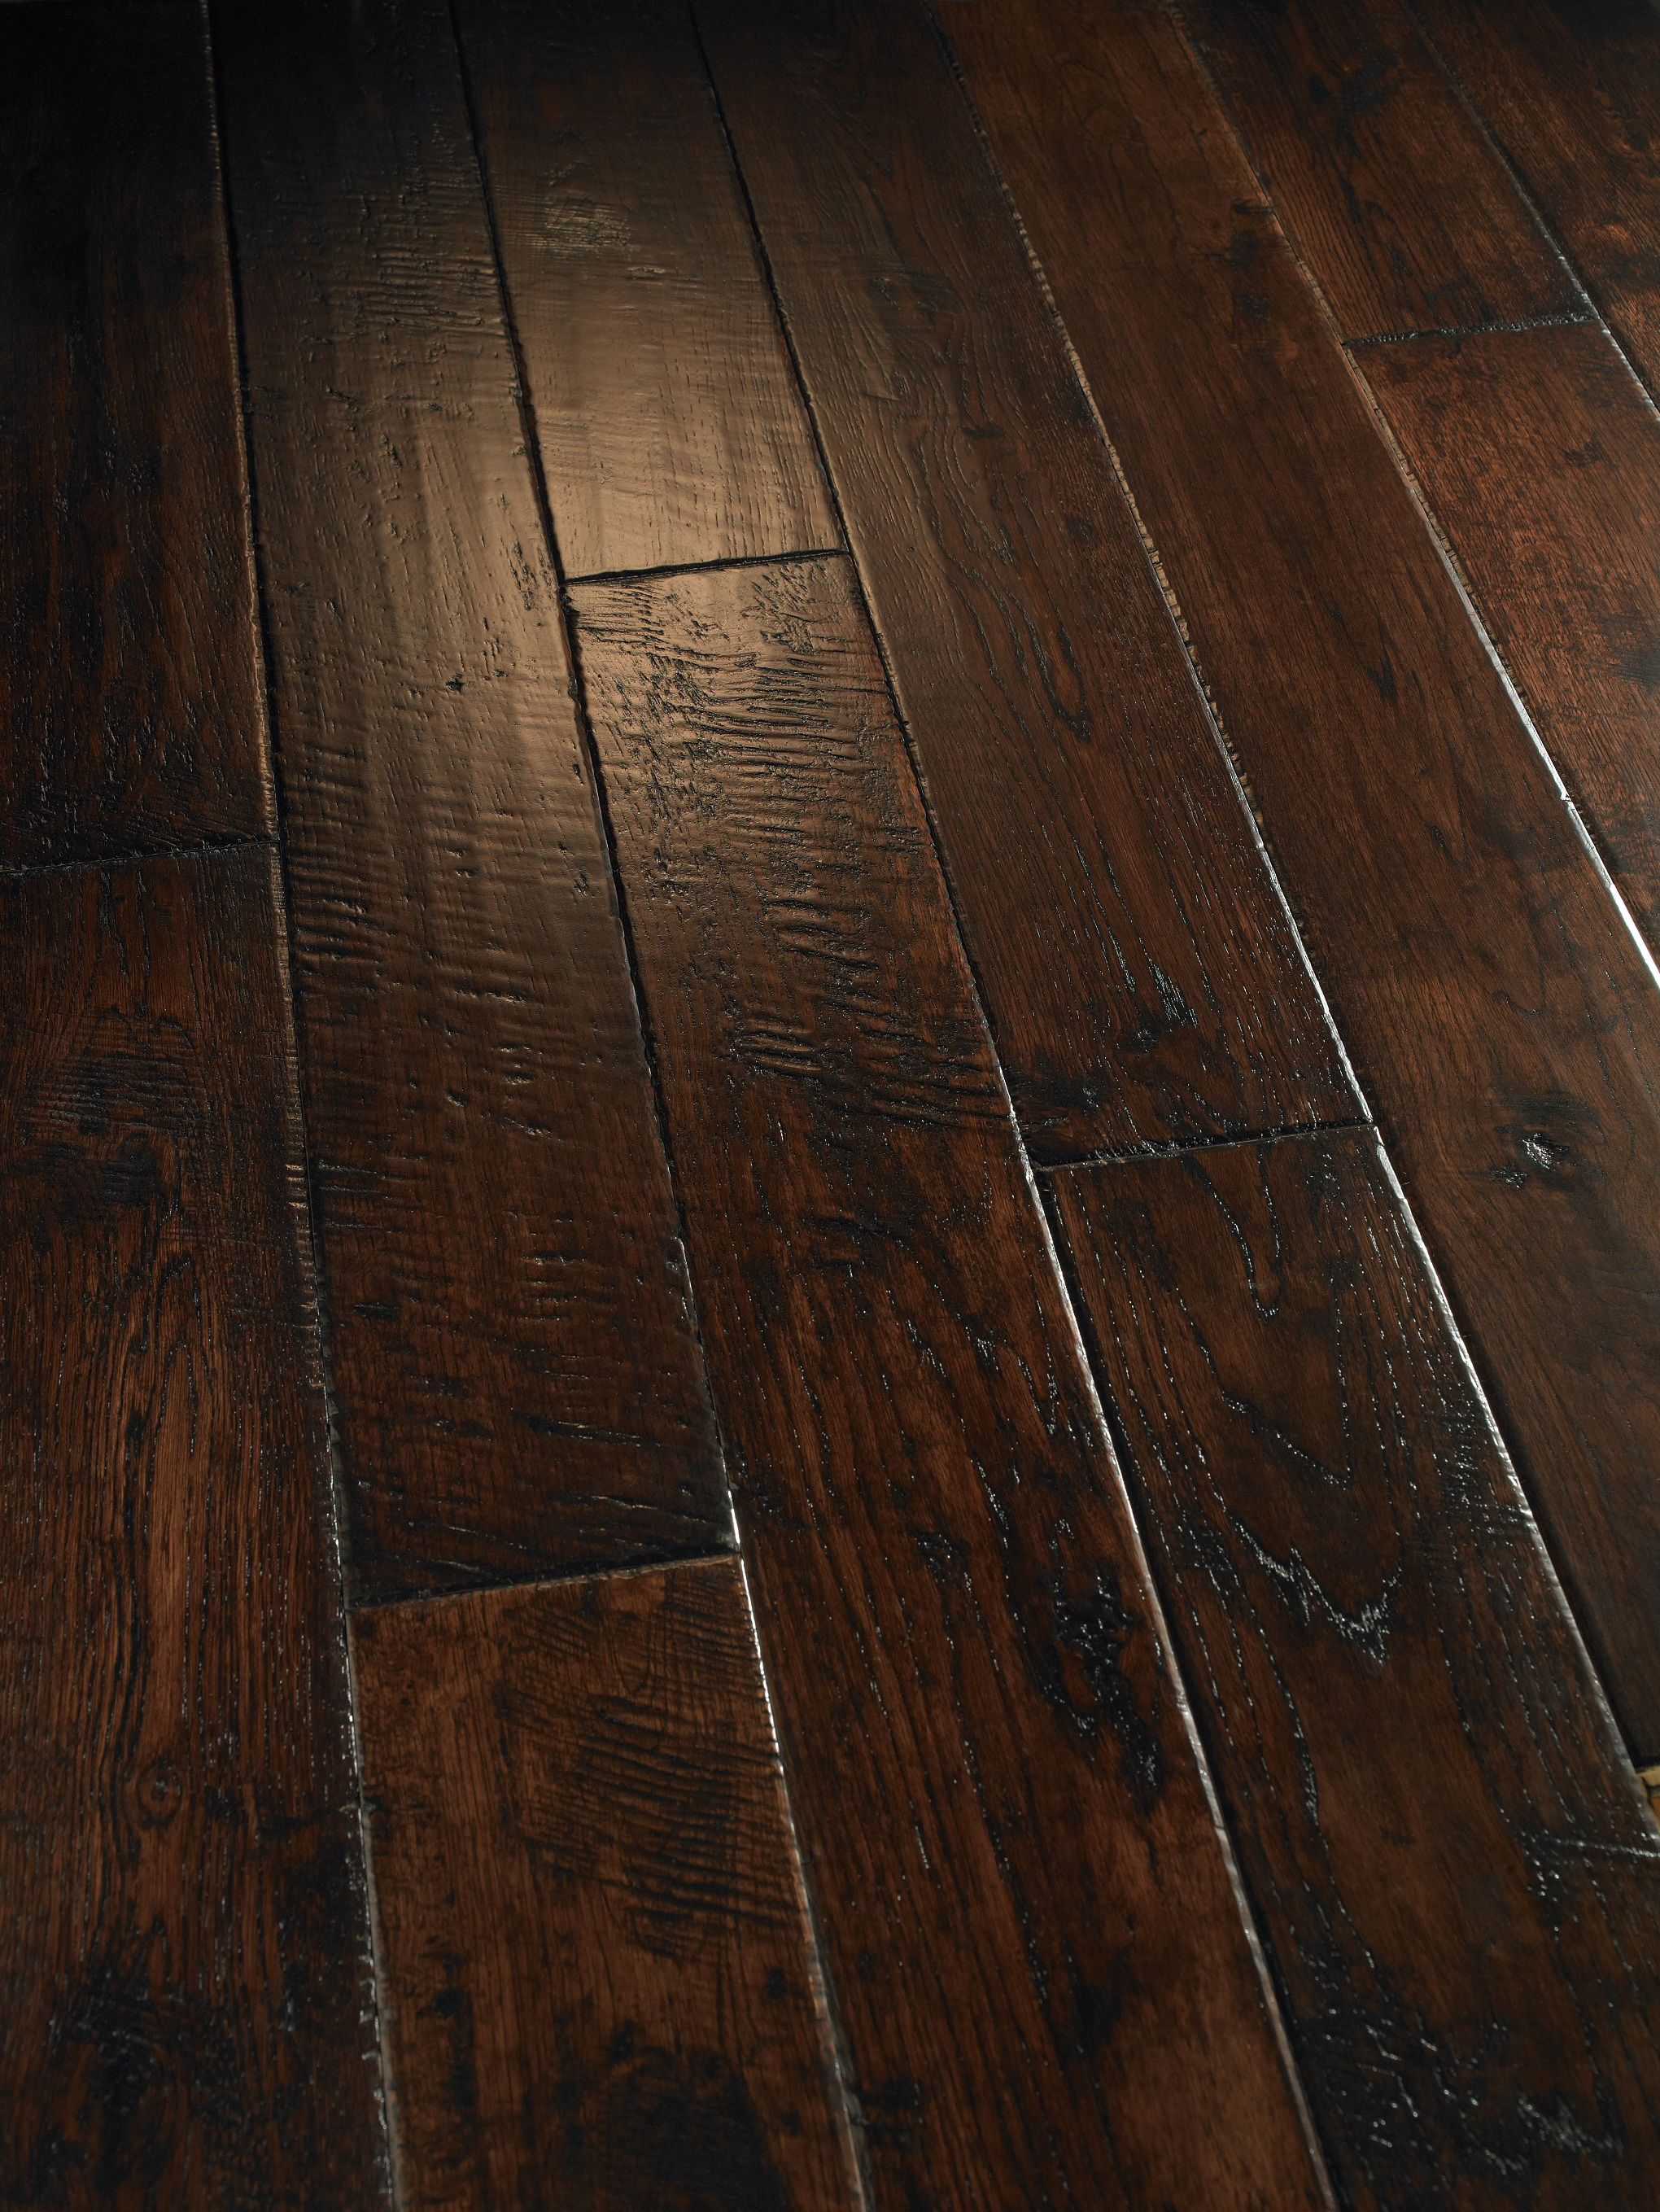 few or home your the brands project elements appalachian all flooring bruce have showroom american we to bellacera st olean new missouri louis remodeling akdo floors bella hardwood our name ark center carpet need cera you for a design